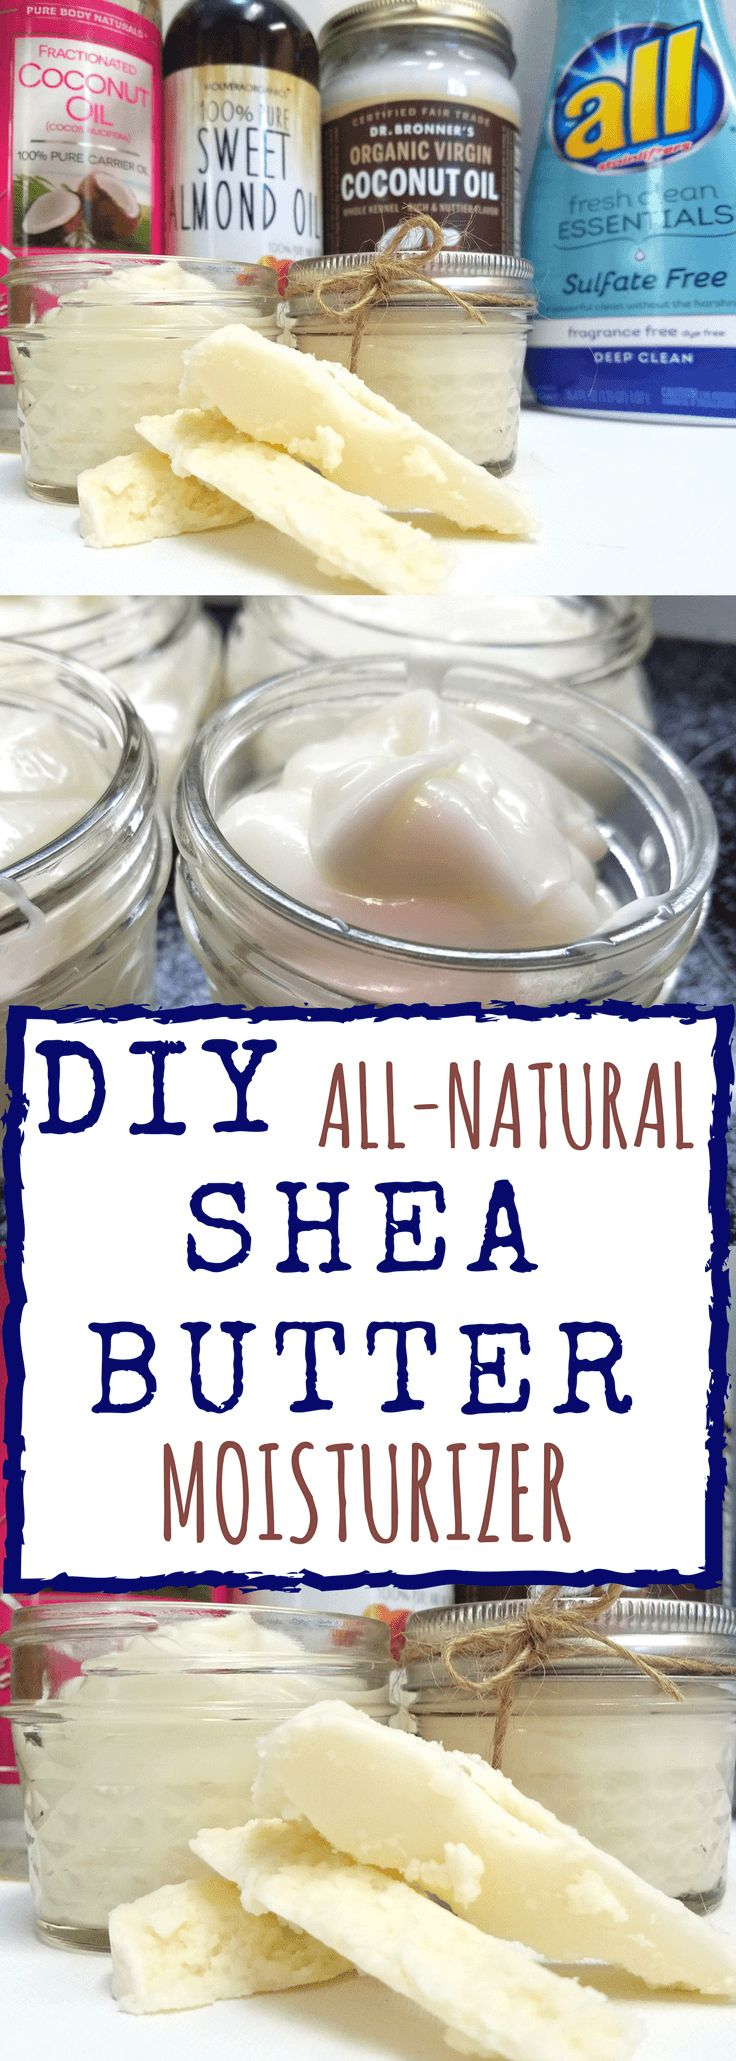 #ad #allessentials #allsulfatefree | DIY Whipped Shea Butter | All you have to do is melt down the ingredients, stir and wah la' moisturizer. Sounds easy enough right? | Homestead Wishing, Author Kristi Wheeler | http://homesteadwishing.com/diy-whipped-shea-butter-moisturizer/ | diy-shea-butter, diy-body-butter, diy-moisturizer, homemade-shea-butter | DIY-whipped-shea-butter-moisturizer | DIY whipped shea butter moisturizer